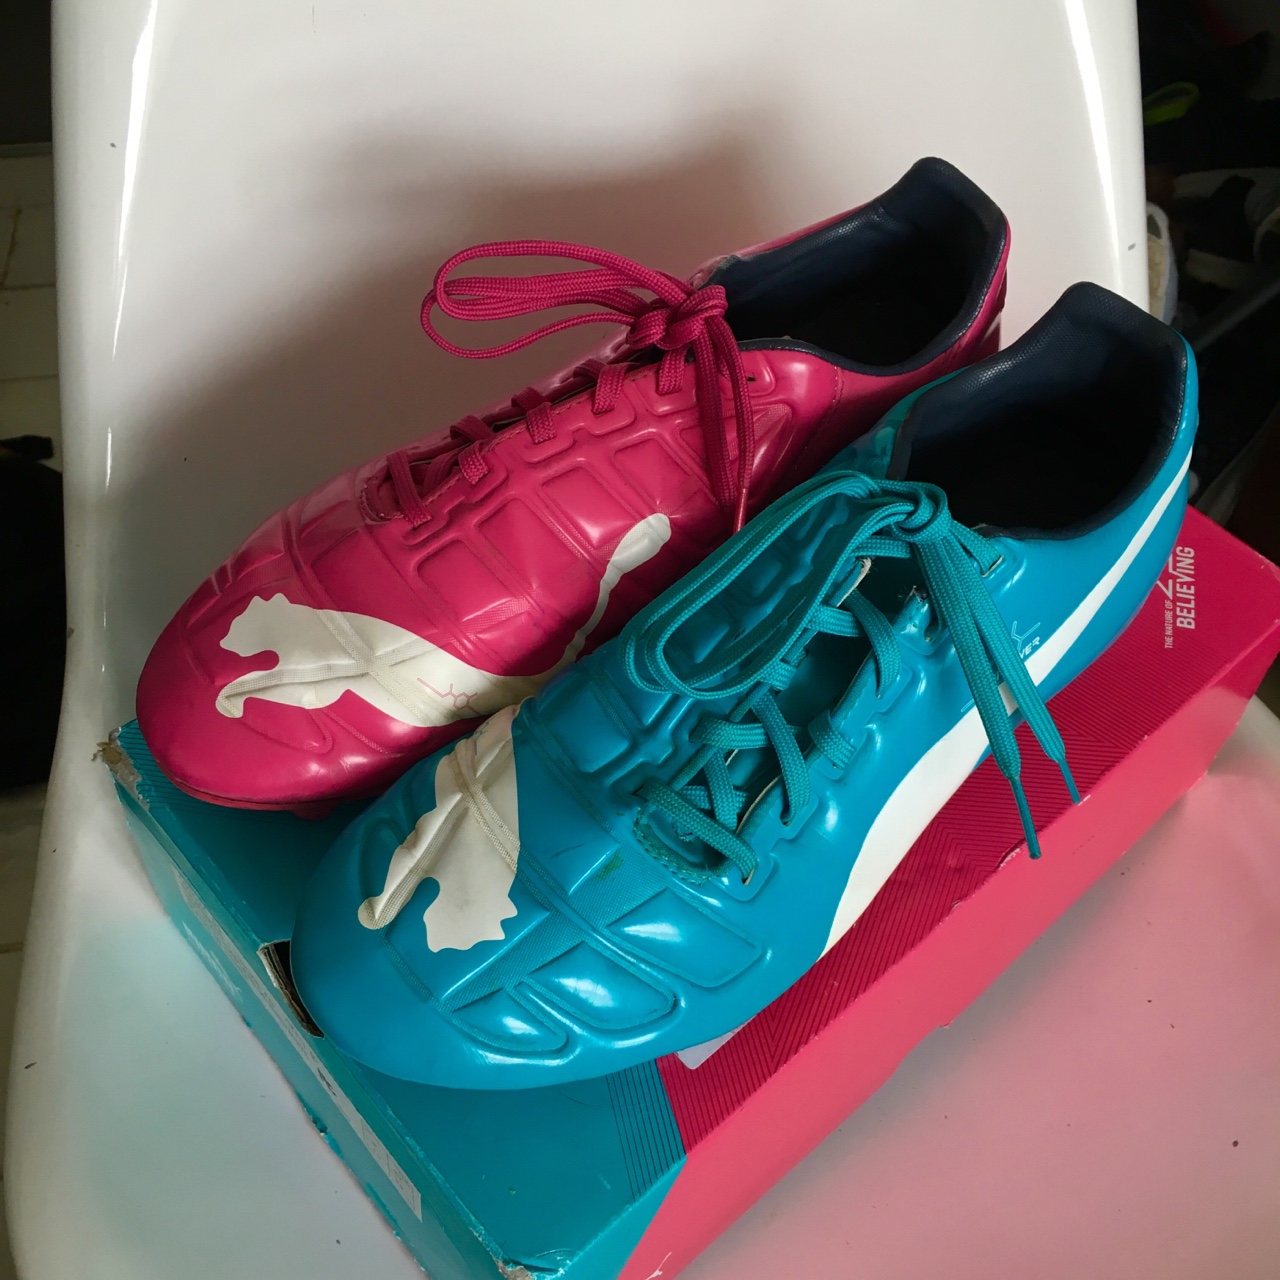 Días laborables blusa privado  puma football shoes pink and blue61% OFF Puma Shoes